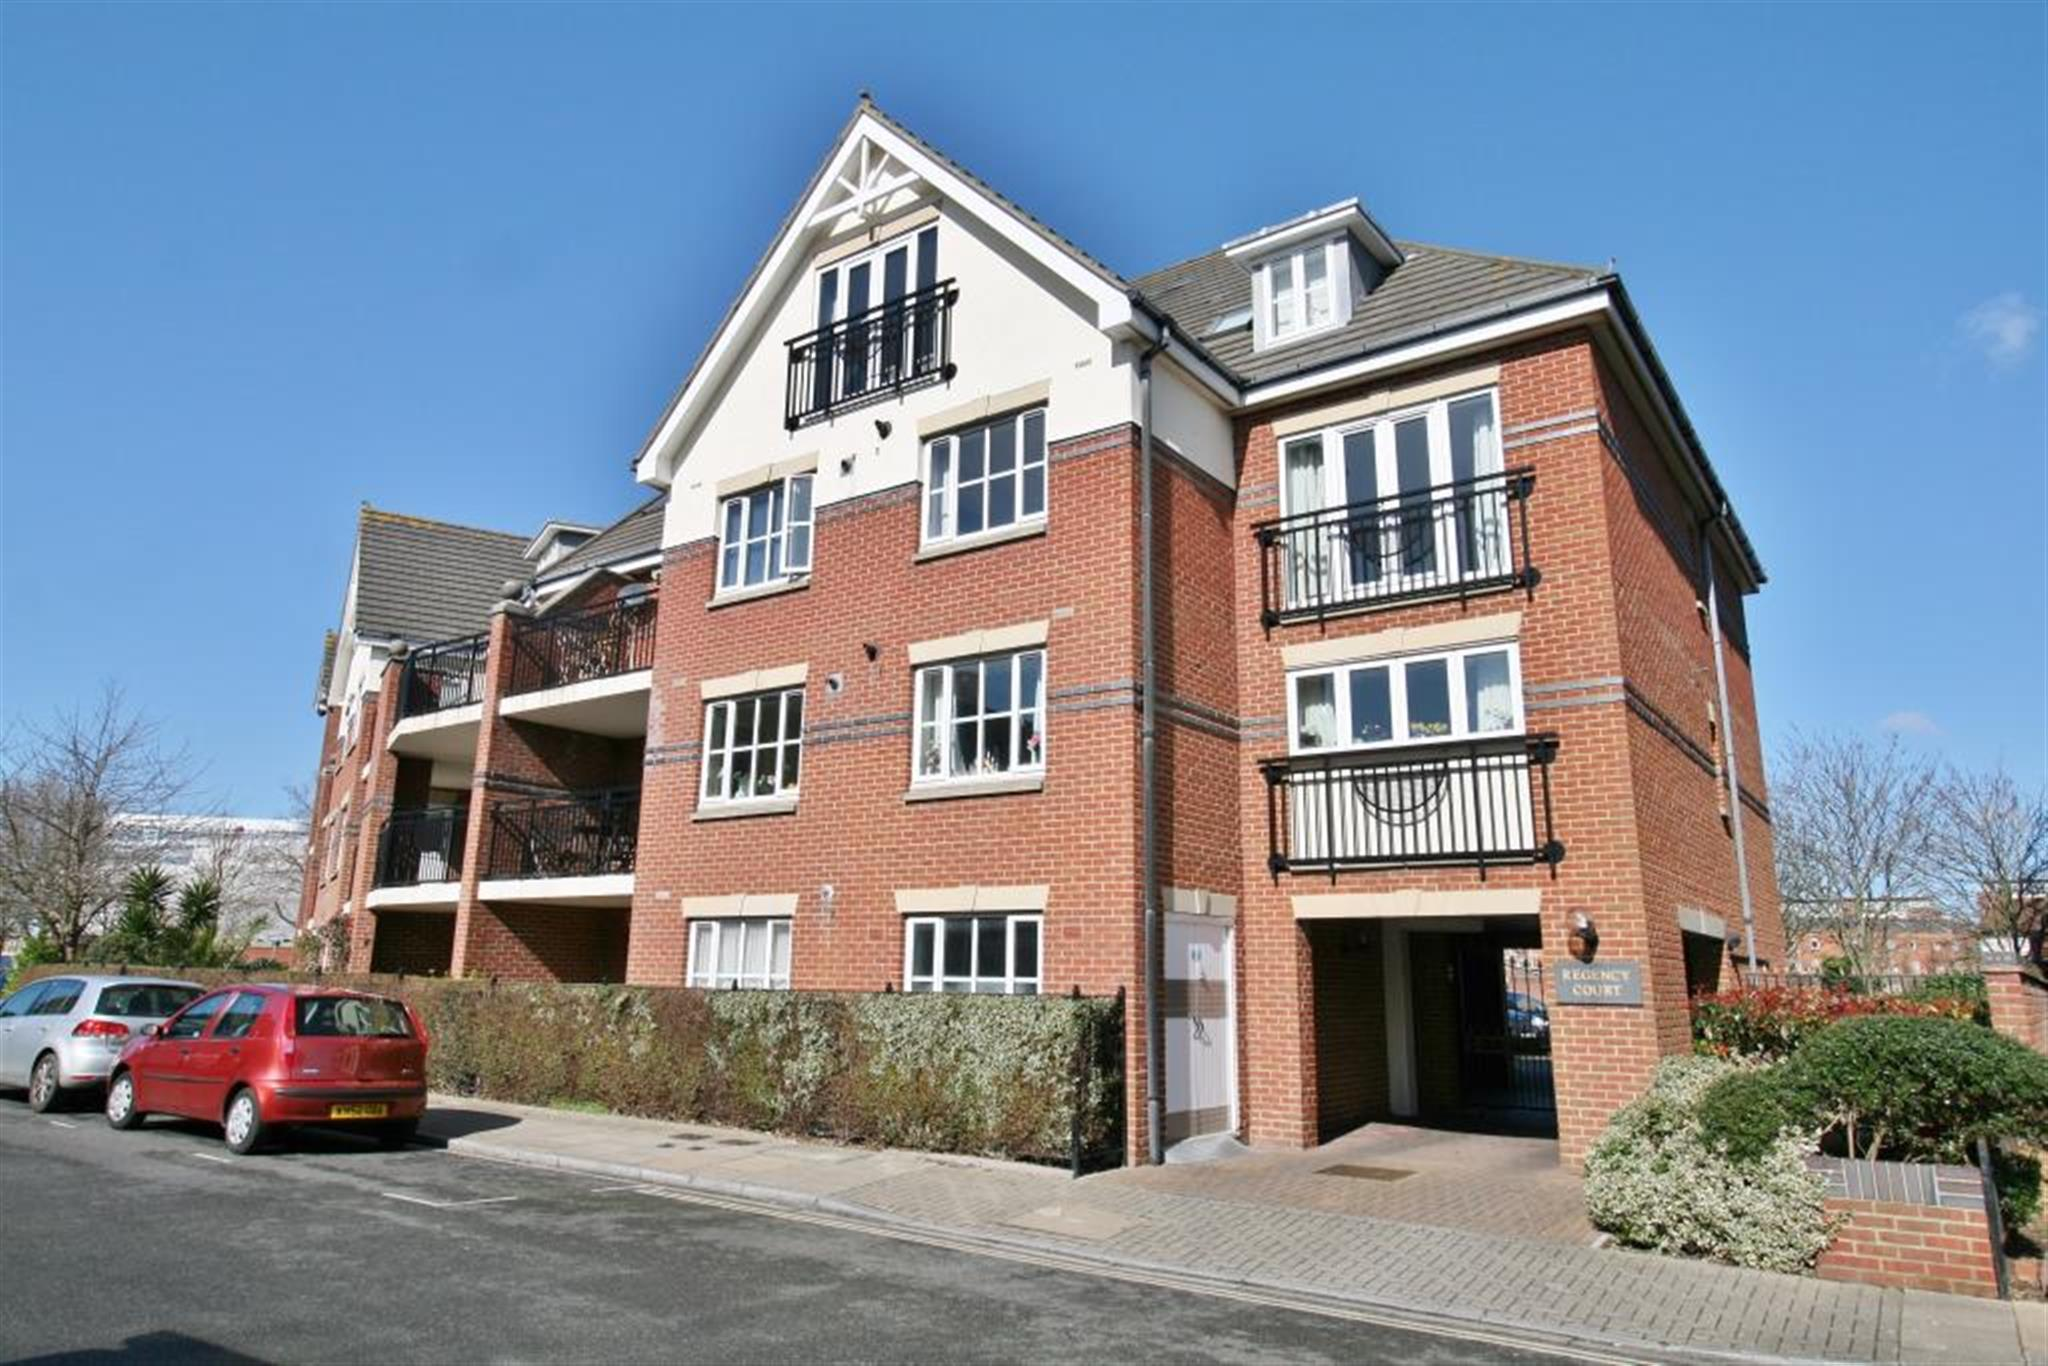 2 bedroom house for rent portsmouth 2 bedroom house to rent in trowlock island teddington tw11 On 2 bedroom house for rent portsmouth